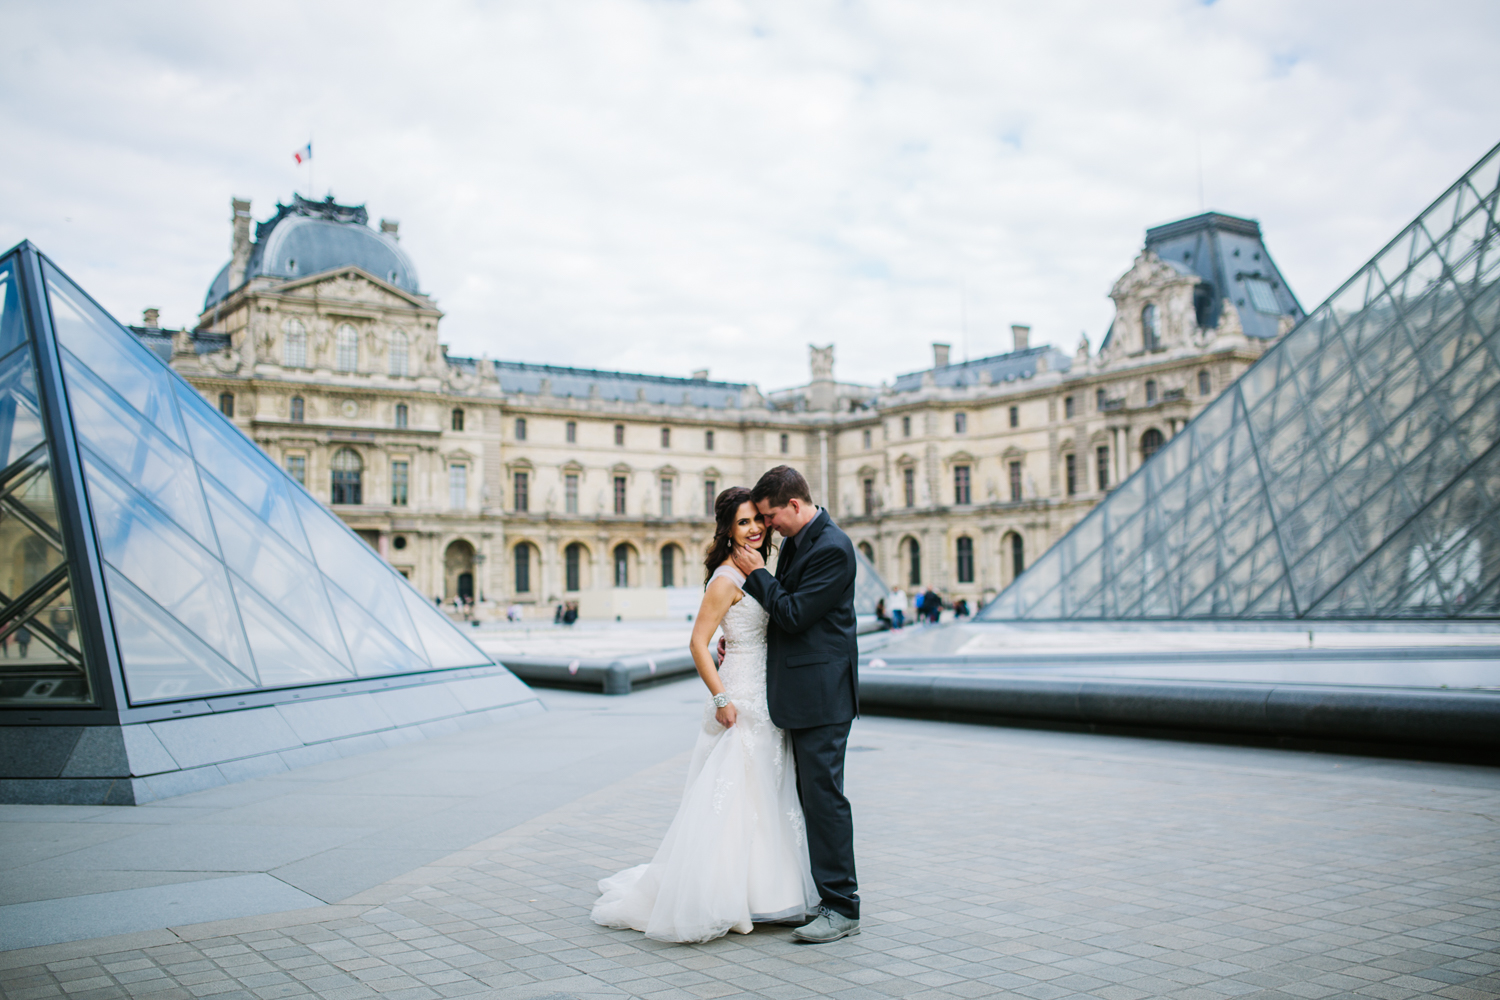 Chico-Wedding-Photography-Ranalla-Photo-Films-Wedding-Video-Wedding-Photographer-Destination-wedding-photographer-venice-wedding-paris-wedding-paris-night-eiffel-tower-9.jpg